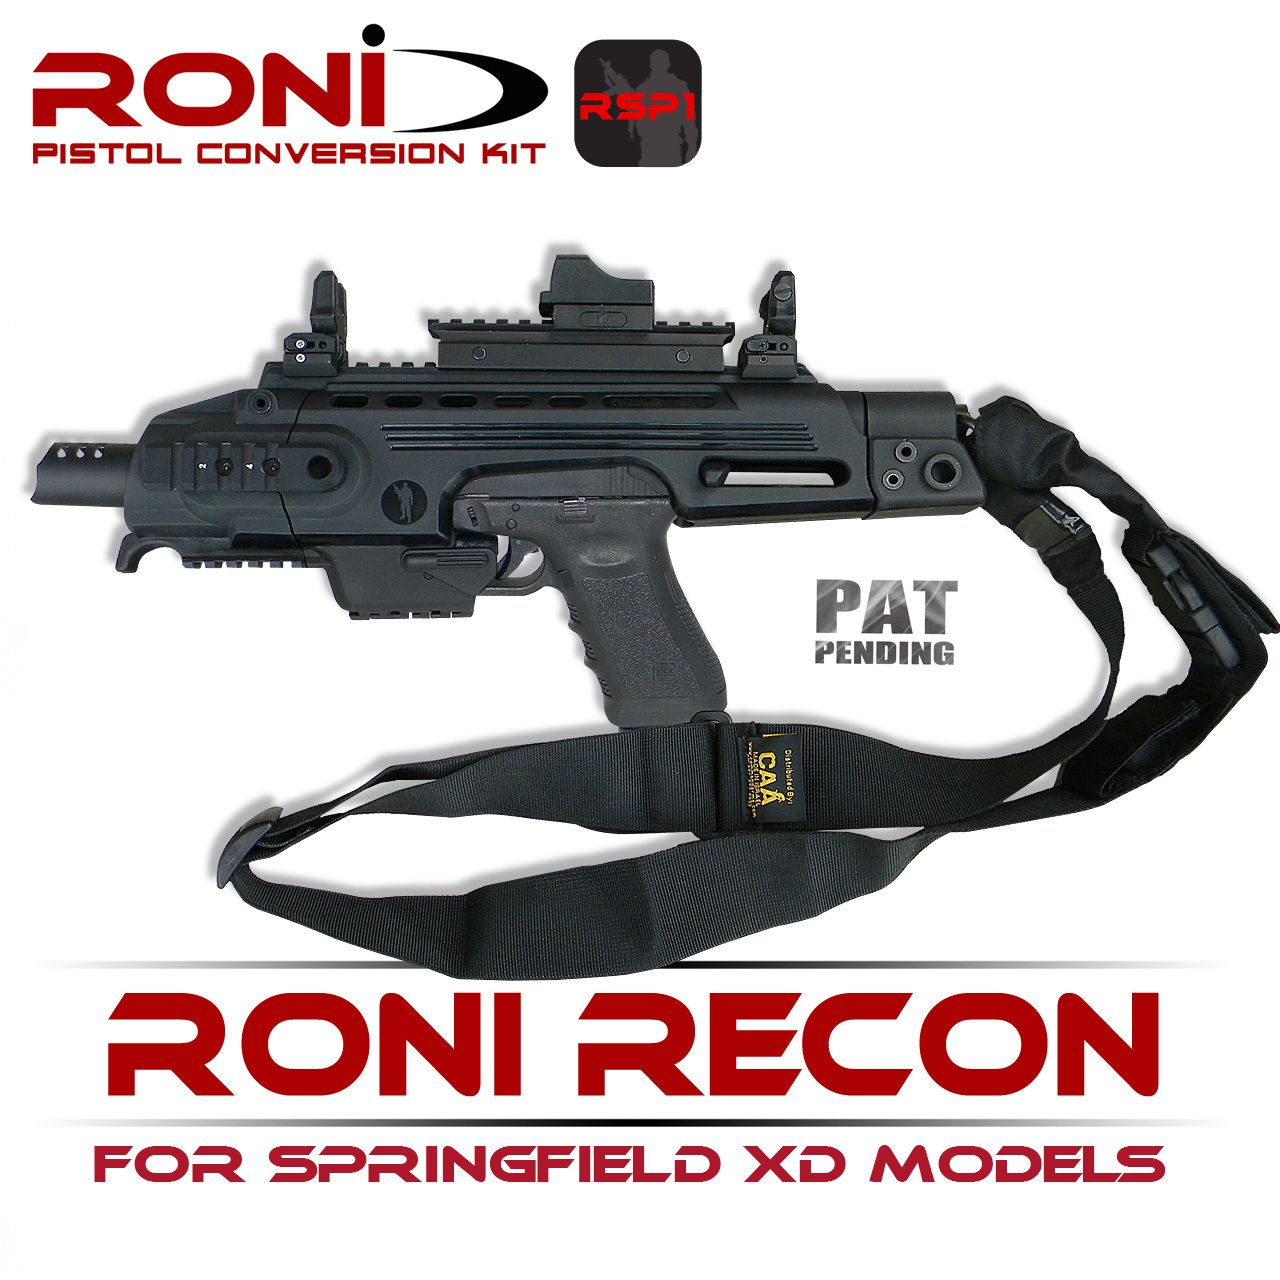 RONI RECON for Springfield XD Models   RONIRSP1 - Command